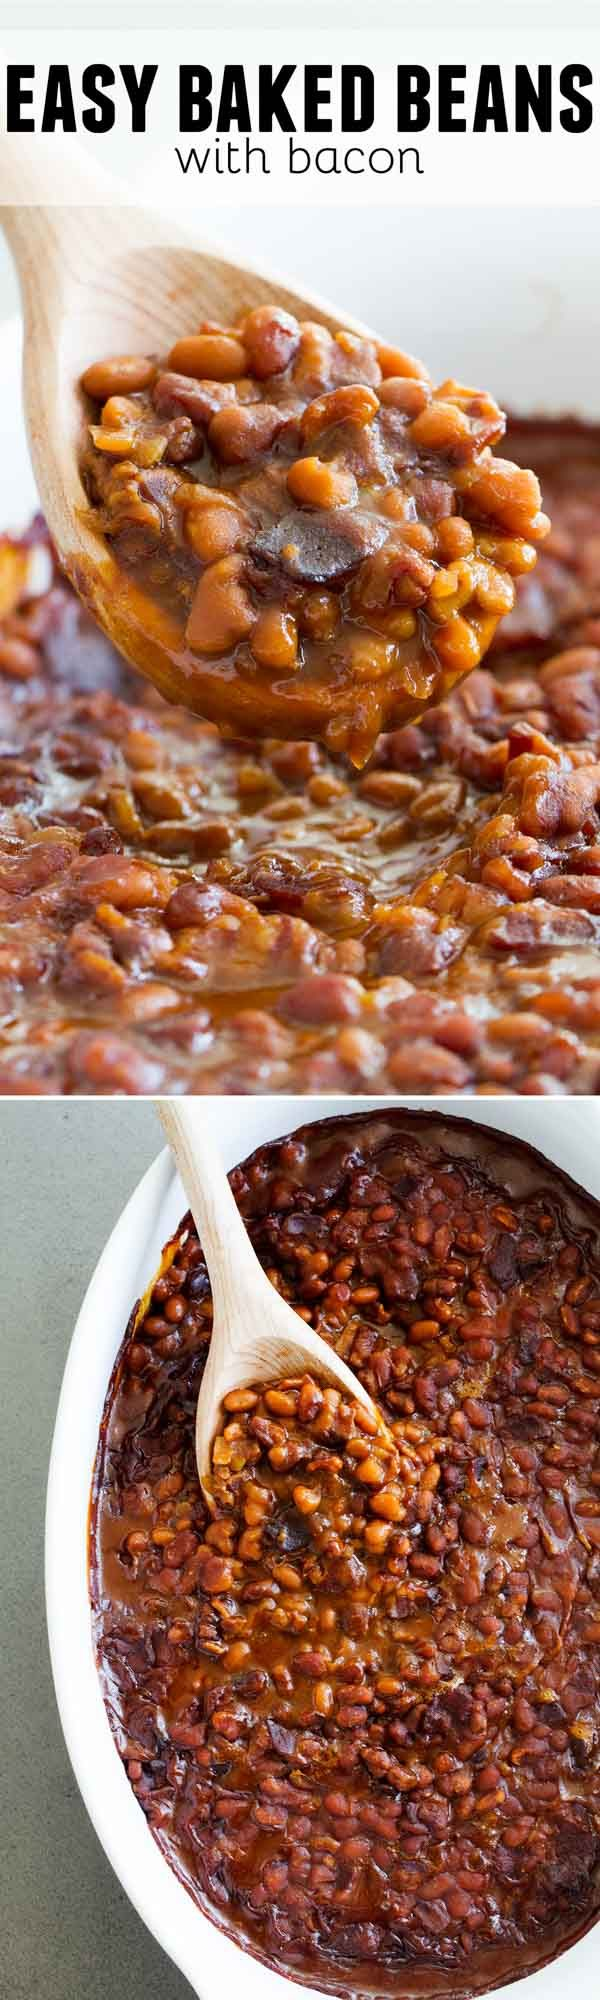 Full flavored and super easy, these Easy Baked Beans with Bacon are so delicious that you'll want to serve them with every meal all summer long!